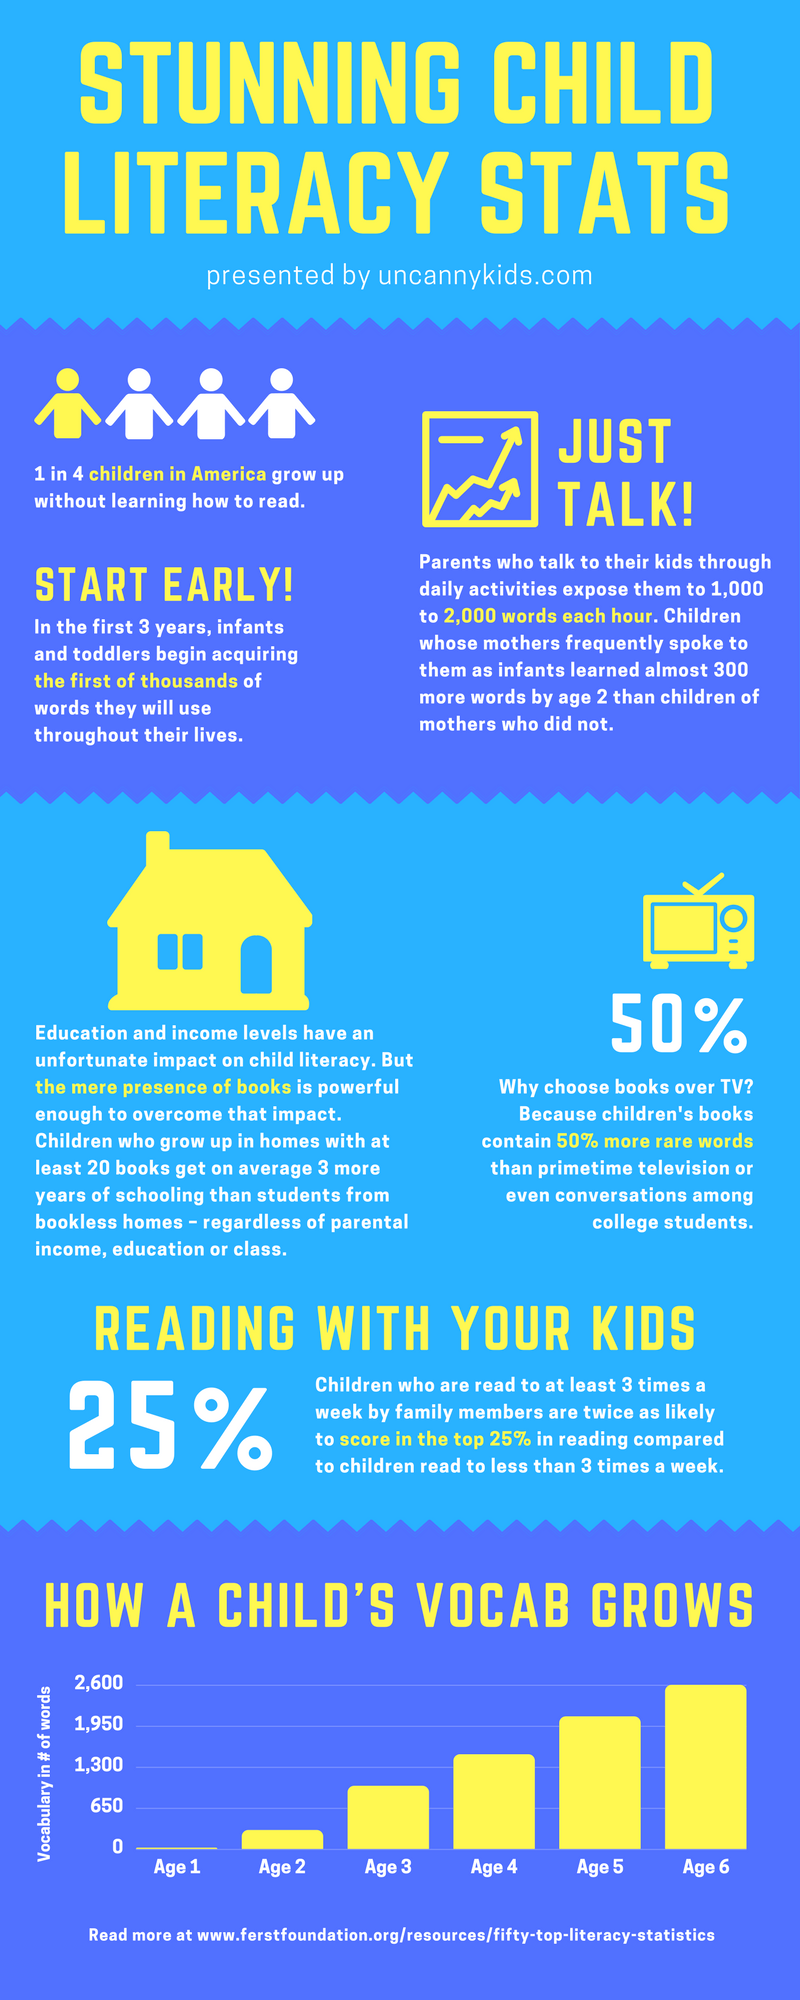 Stunning Child Literacy Stats Infographic